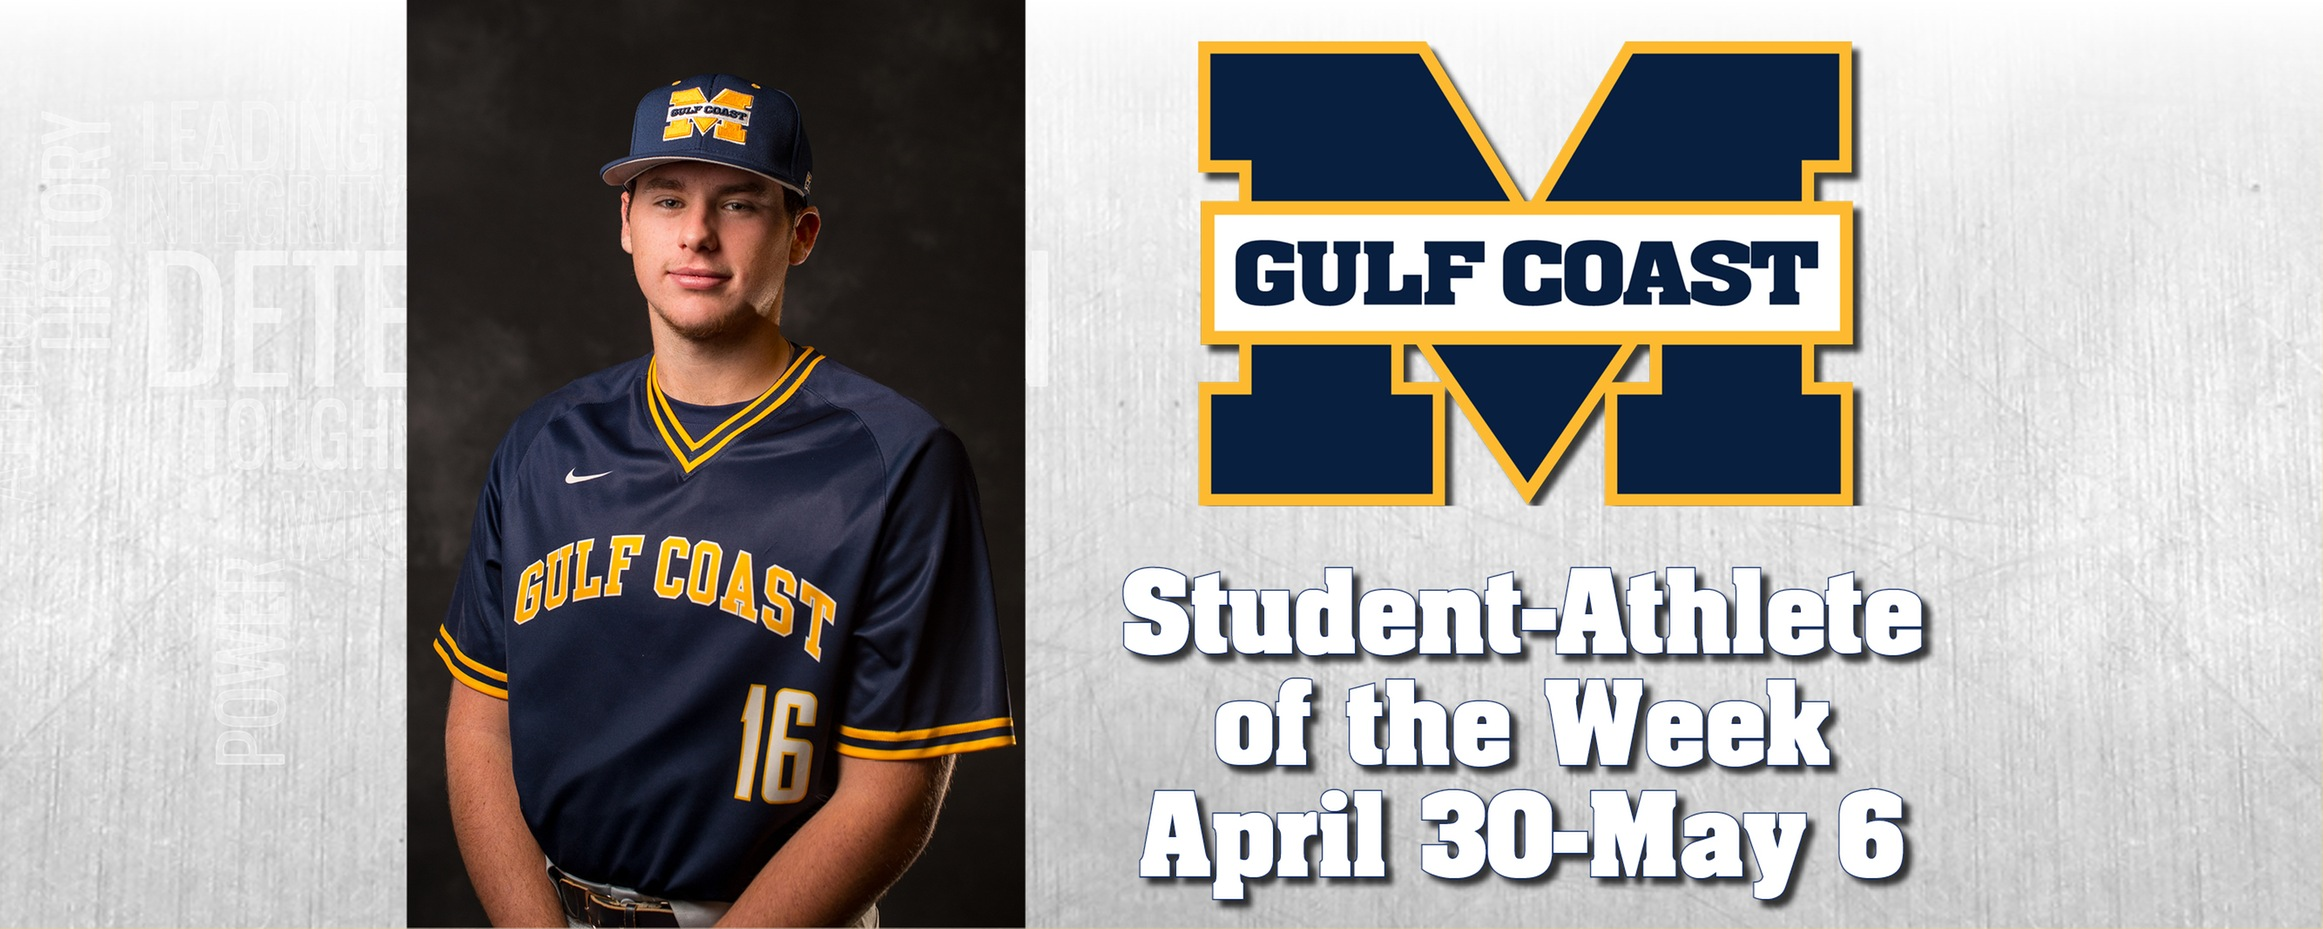 Lewis named MGCCC Student-Athlete of the Week